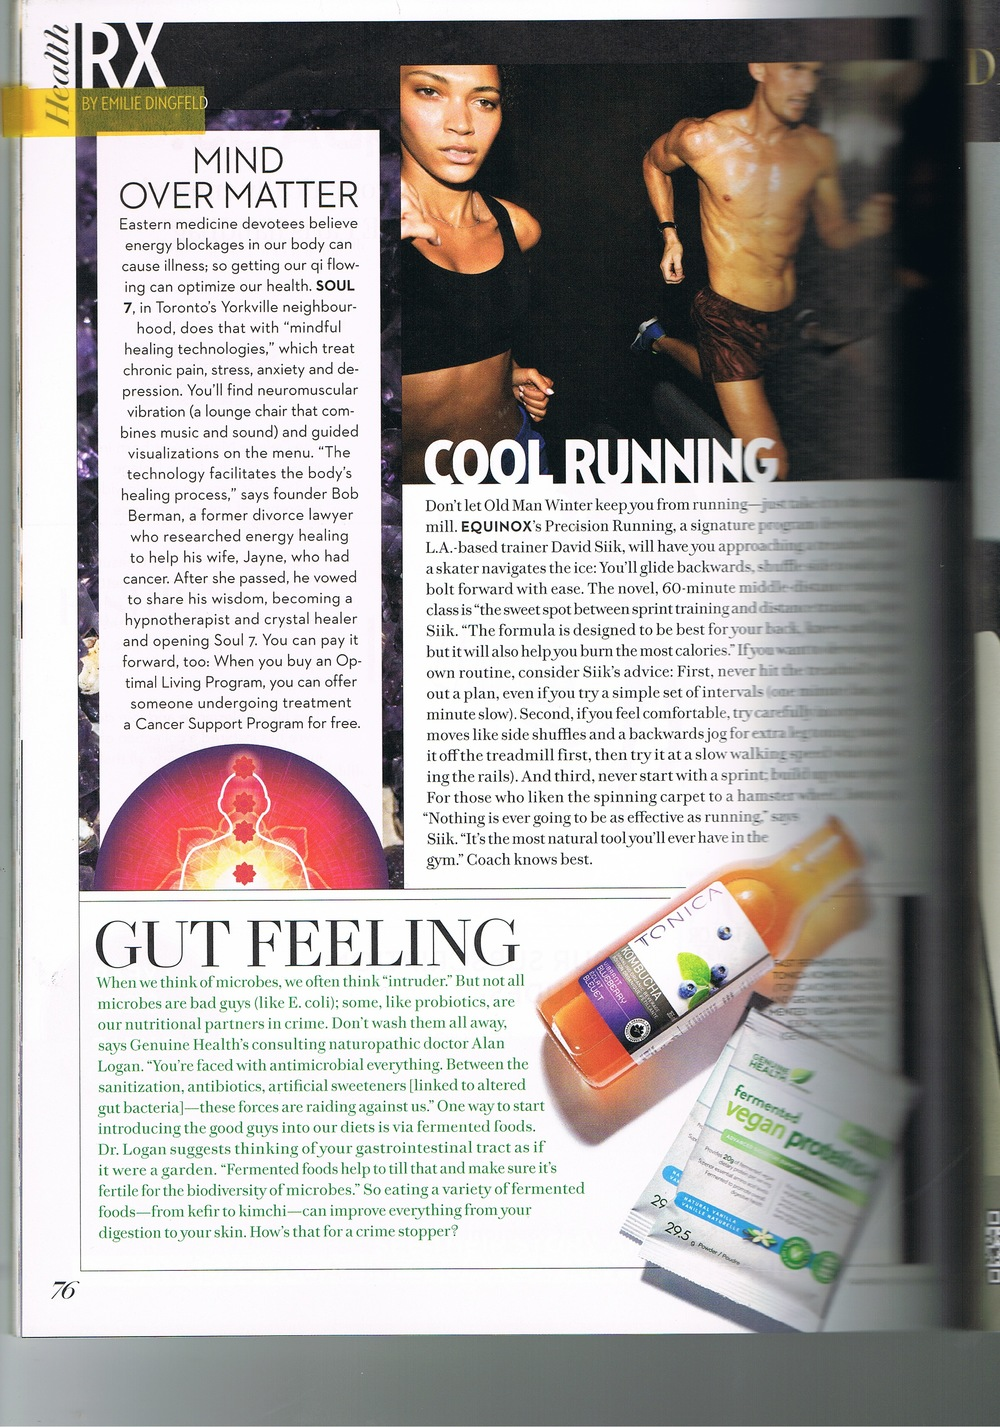 Soul 7 feature in Fashion magazine, talking about their state of the art healing centre that uses guided audiovisual therapy, neuromuscular vibration therapy, crystal healing therapy and pulsed electro magnetic field therapy, PEMF.